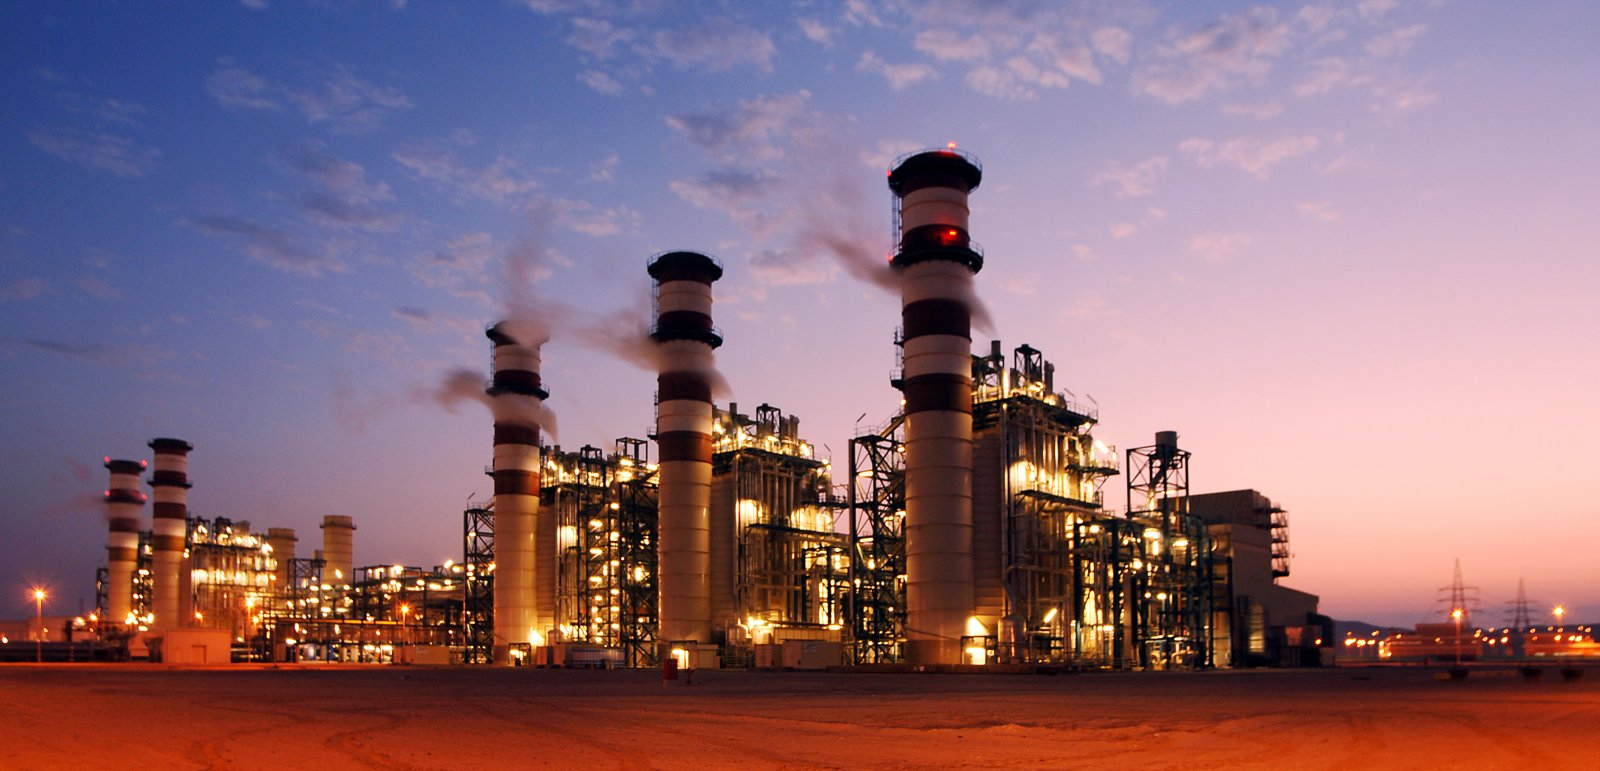 Iphone 4 Animated Wallpaper Download Oil Refinery Wallpaper Gallery